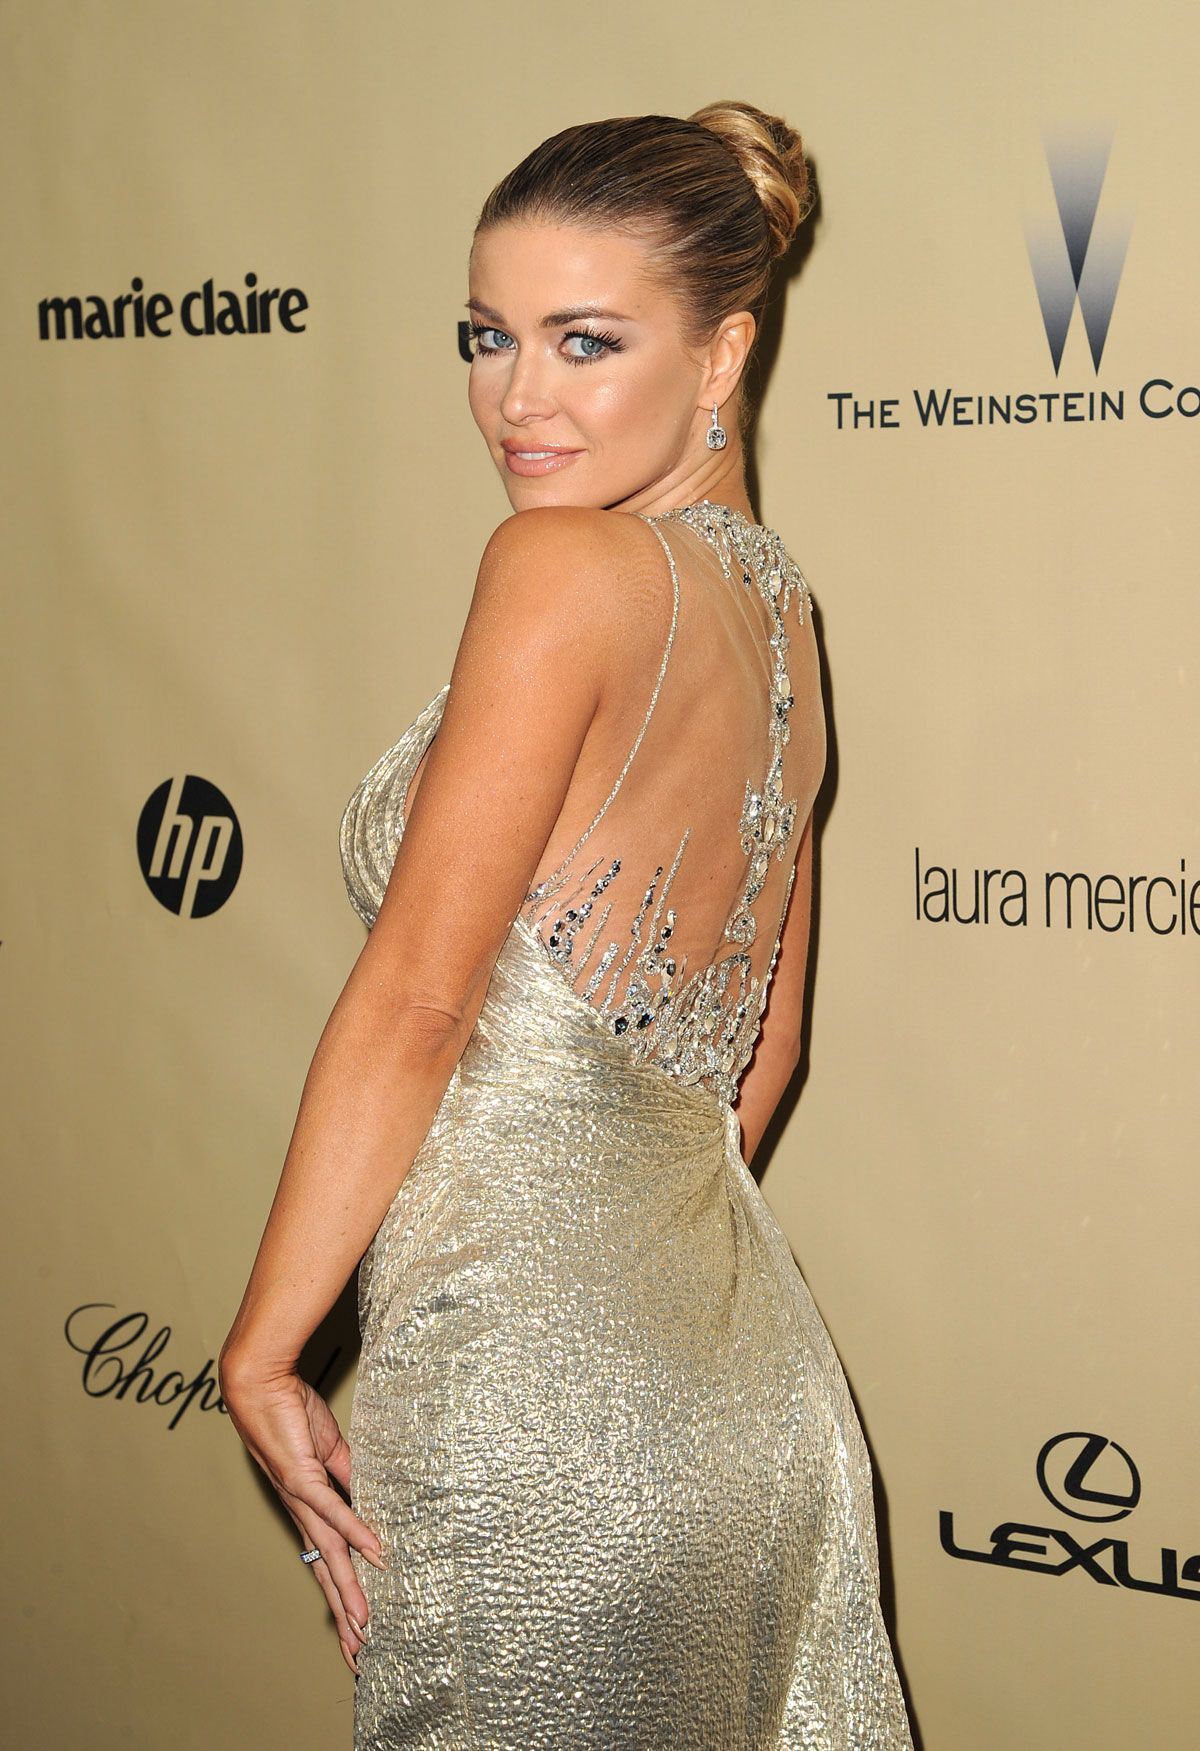 a5acb5ba96e1 CARMEN-ELECTRA-at-Weistein-Company-Golden-Globes-Party-in-Beverly-Hills